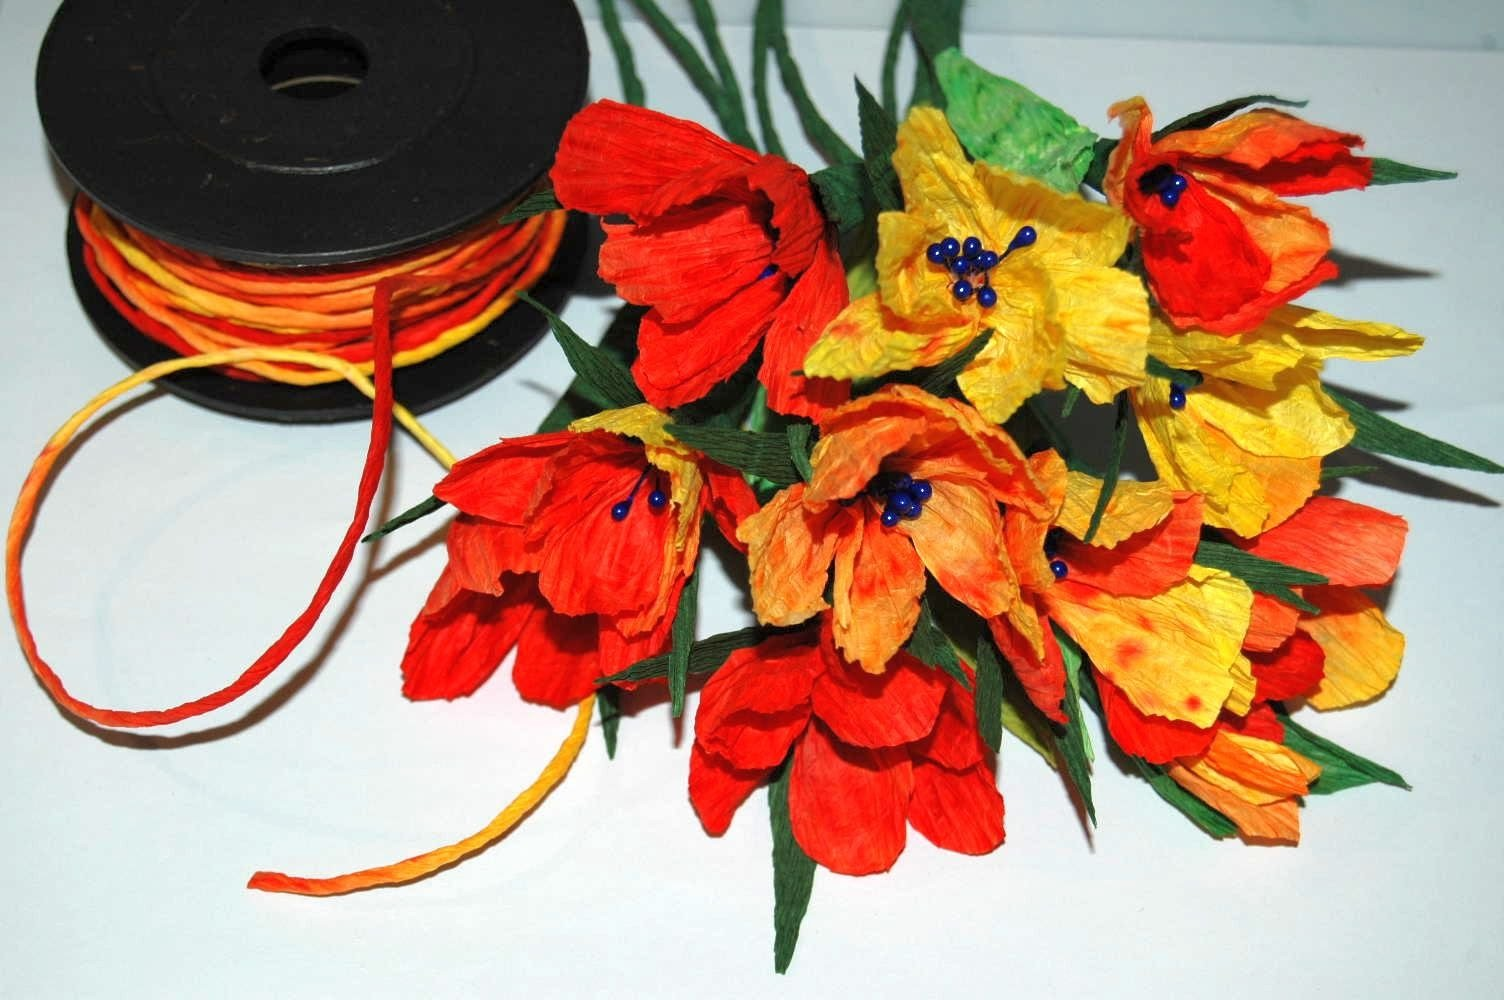 Twist Art kwiaty -  Twist Art flowers DIY